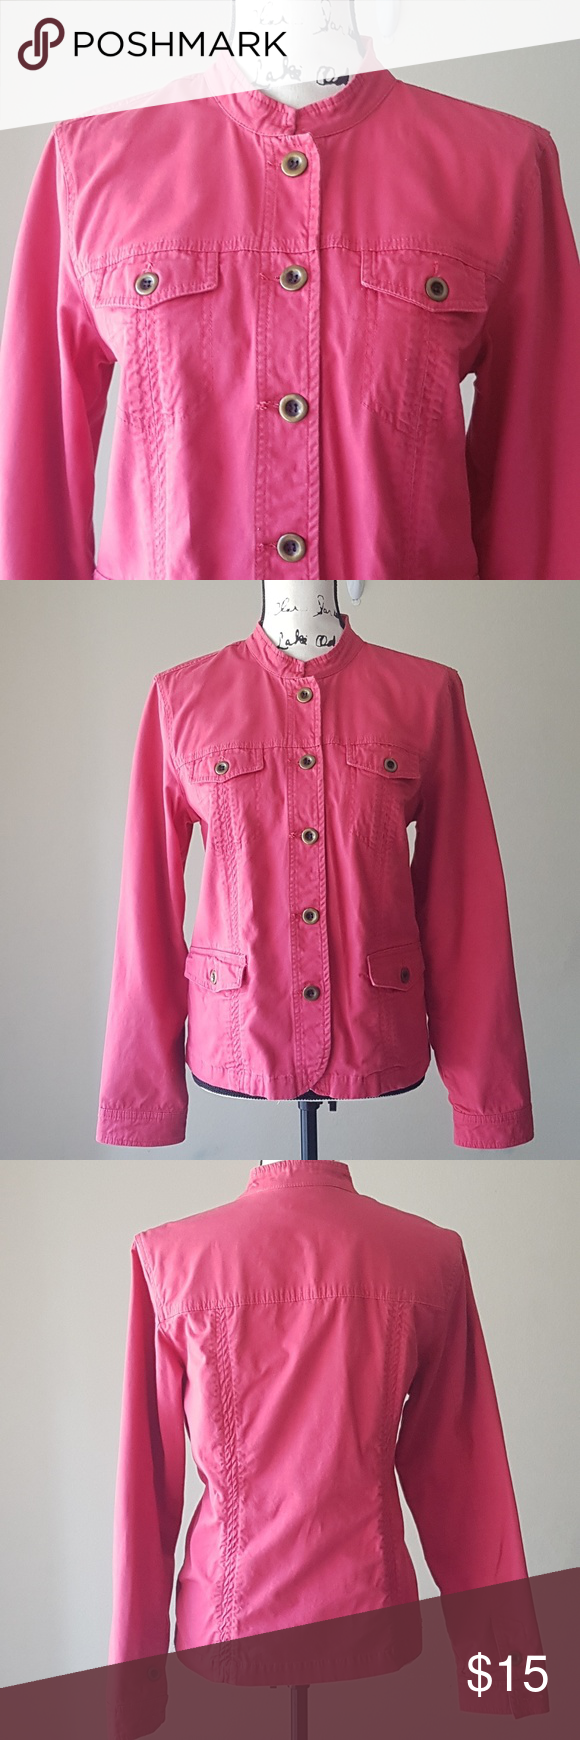 c45ca5438976 Charter Club Pink Jacket Size M Jacket is in very good condition. Perfect  for the upcoming fall season. Charter Club Jackets   Coats